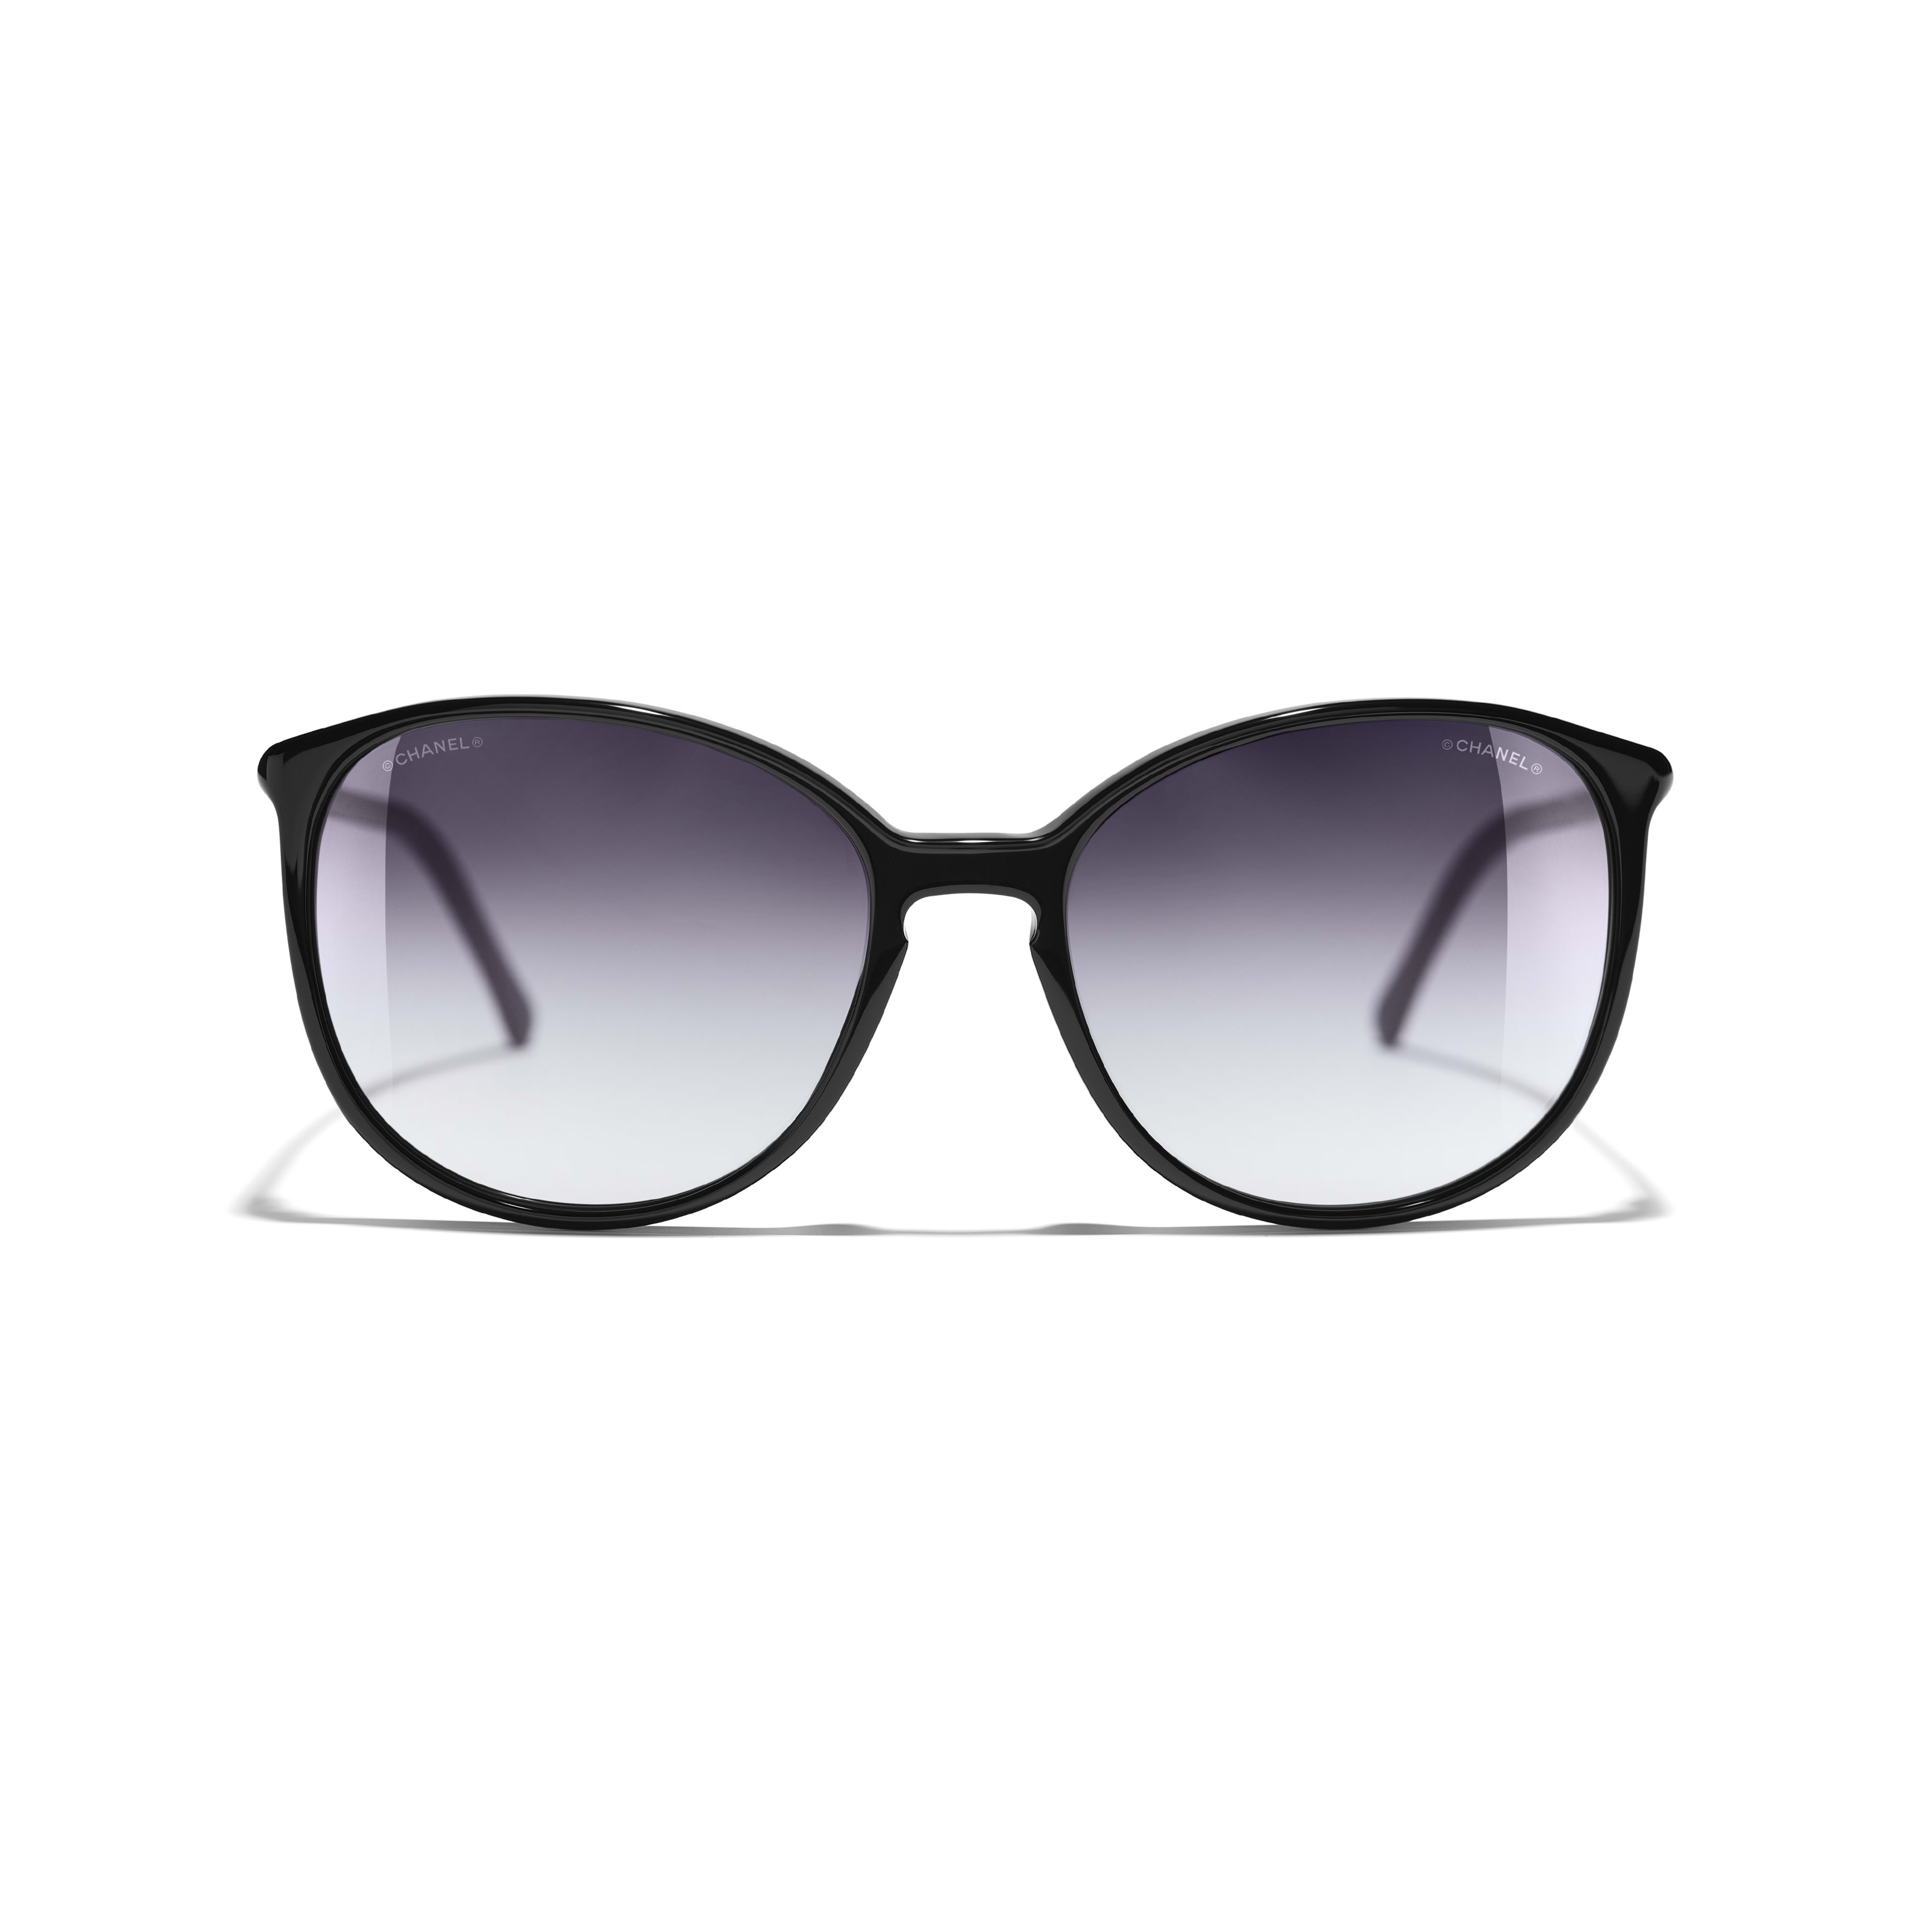 Butterfly Sunglasses - Black - Acetate - CHANEL - Alternative view - see standard sized version